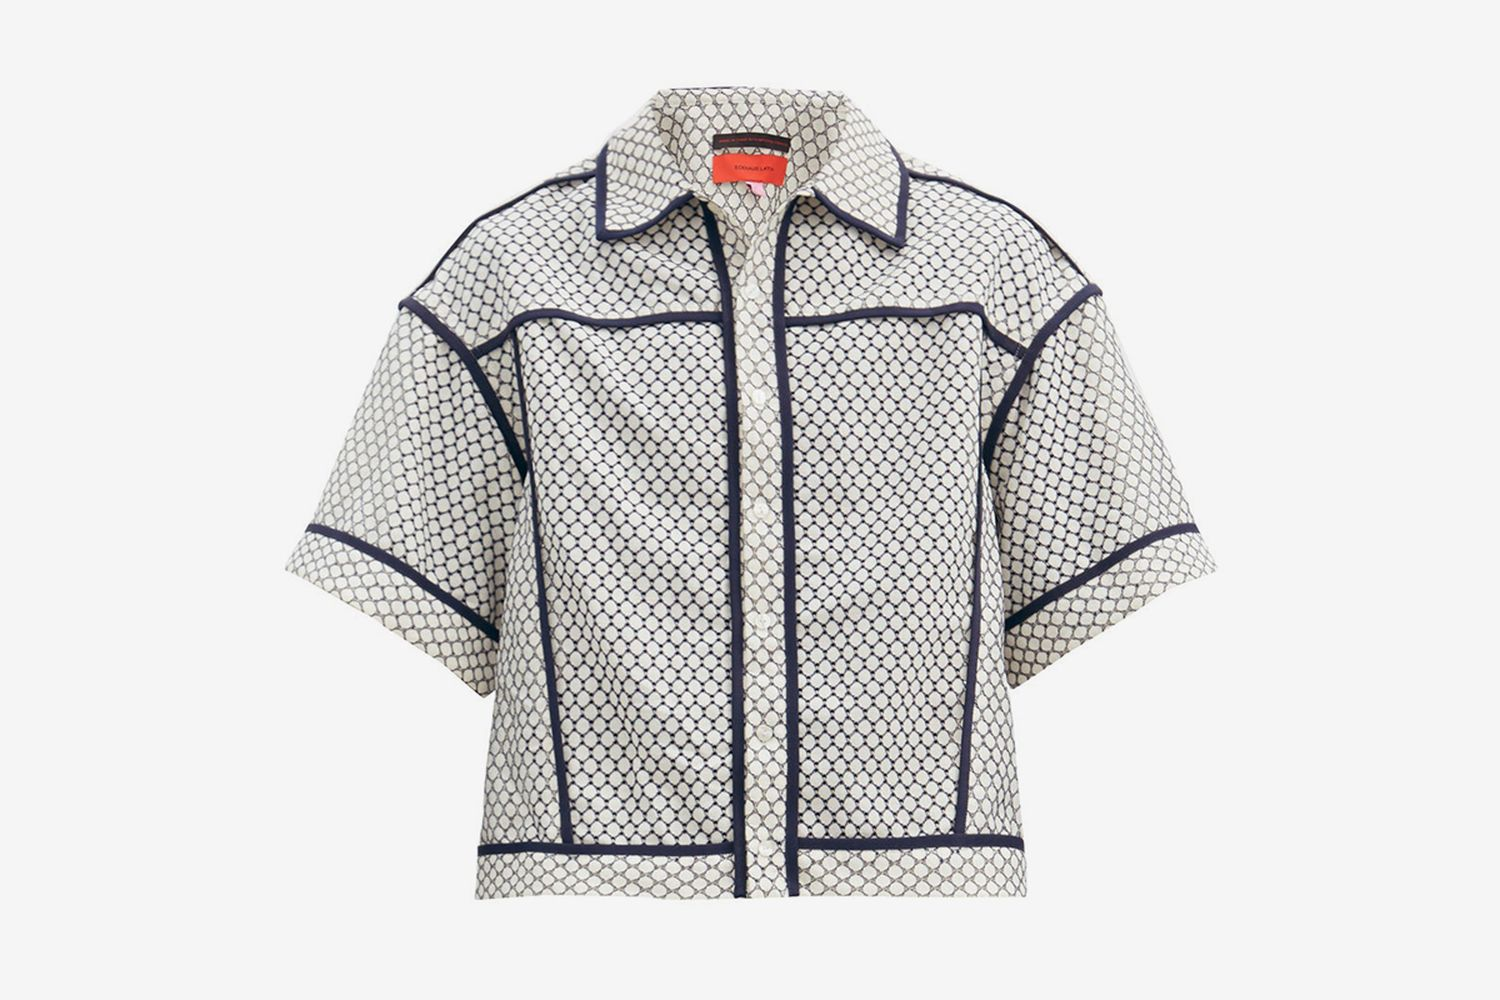 Piped-Trim Jacquard-Knitted Shirt